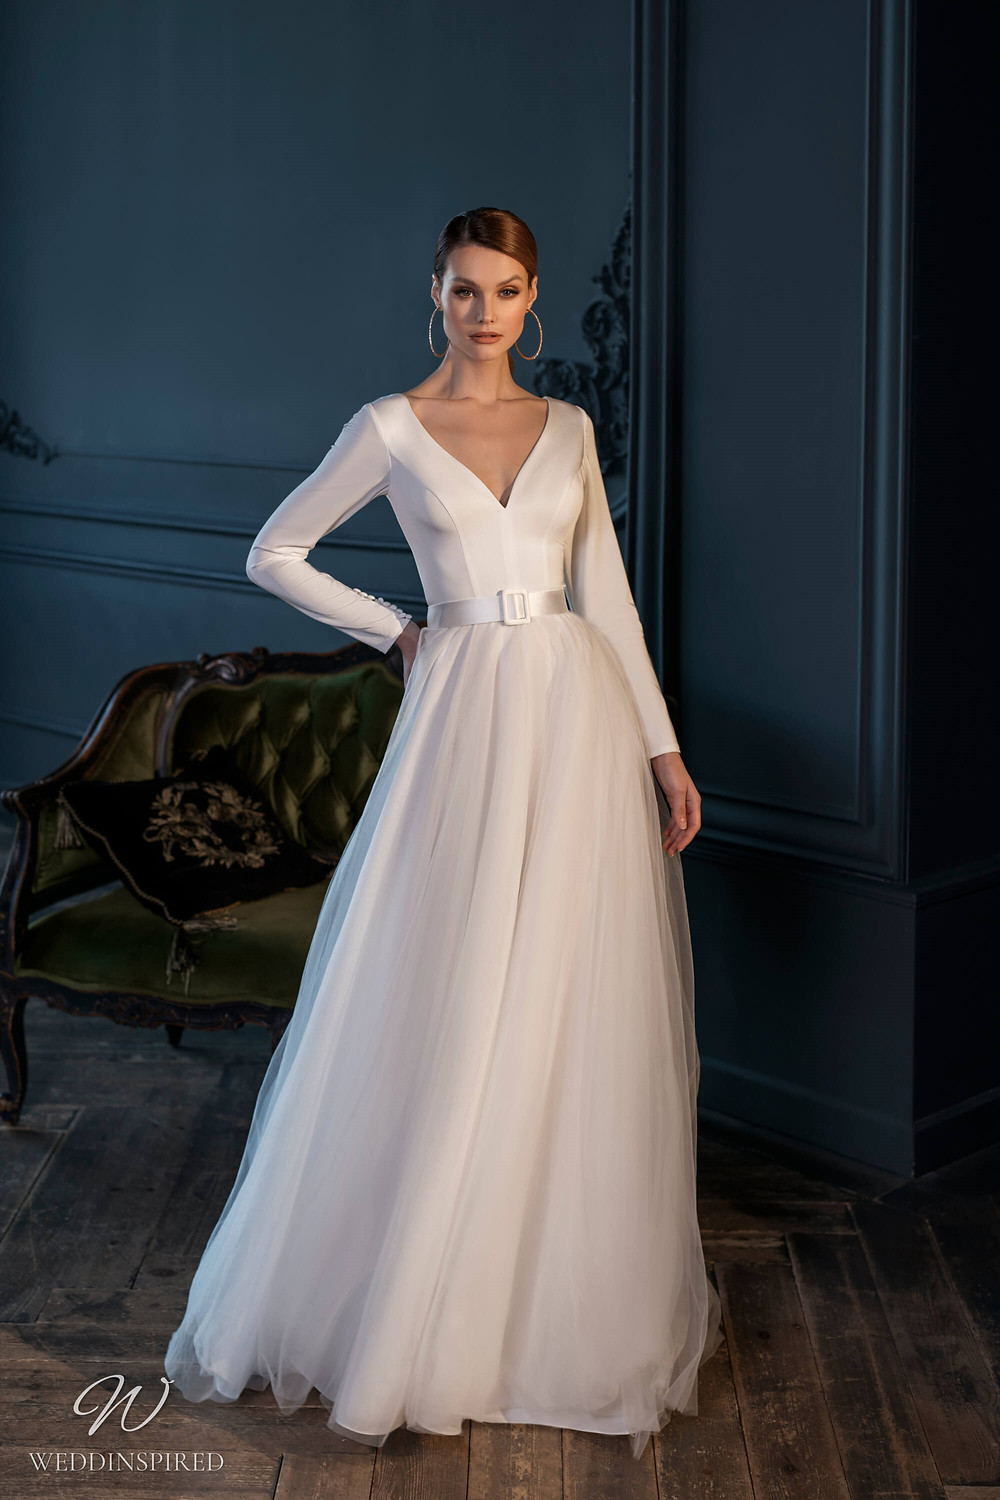 A Naviblue Bridal 2021 tulle and silk A-line wedding dress with long sleeves and a belt